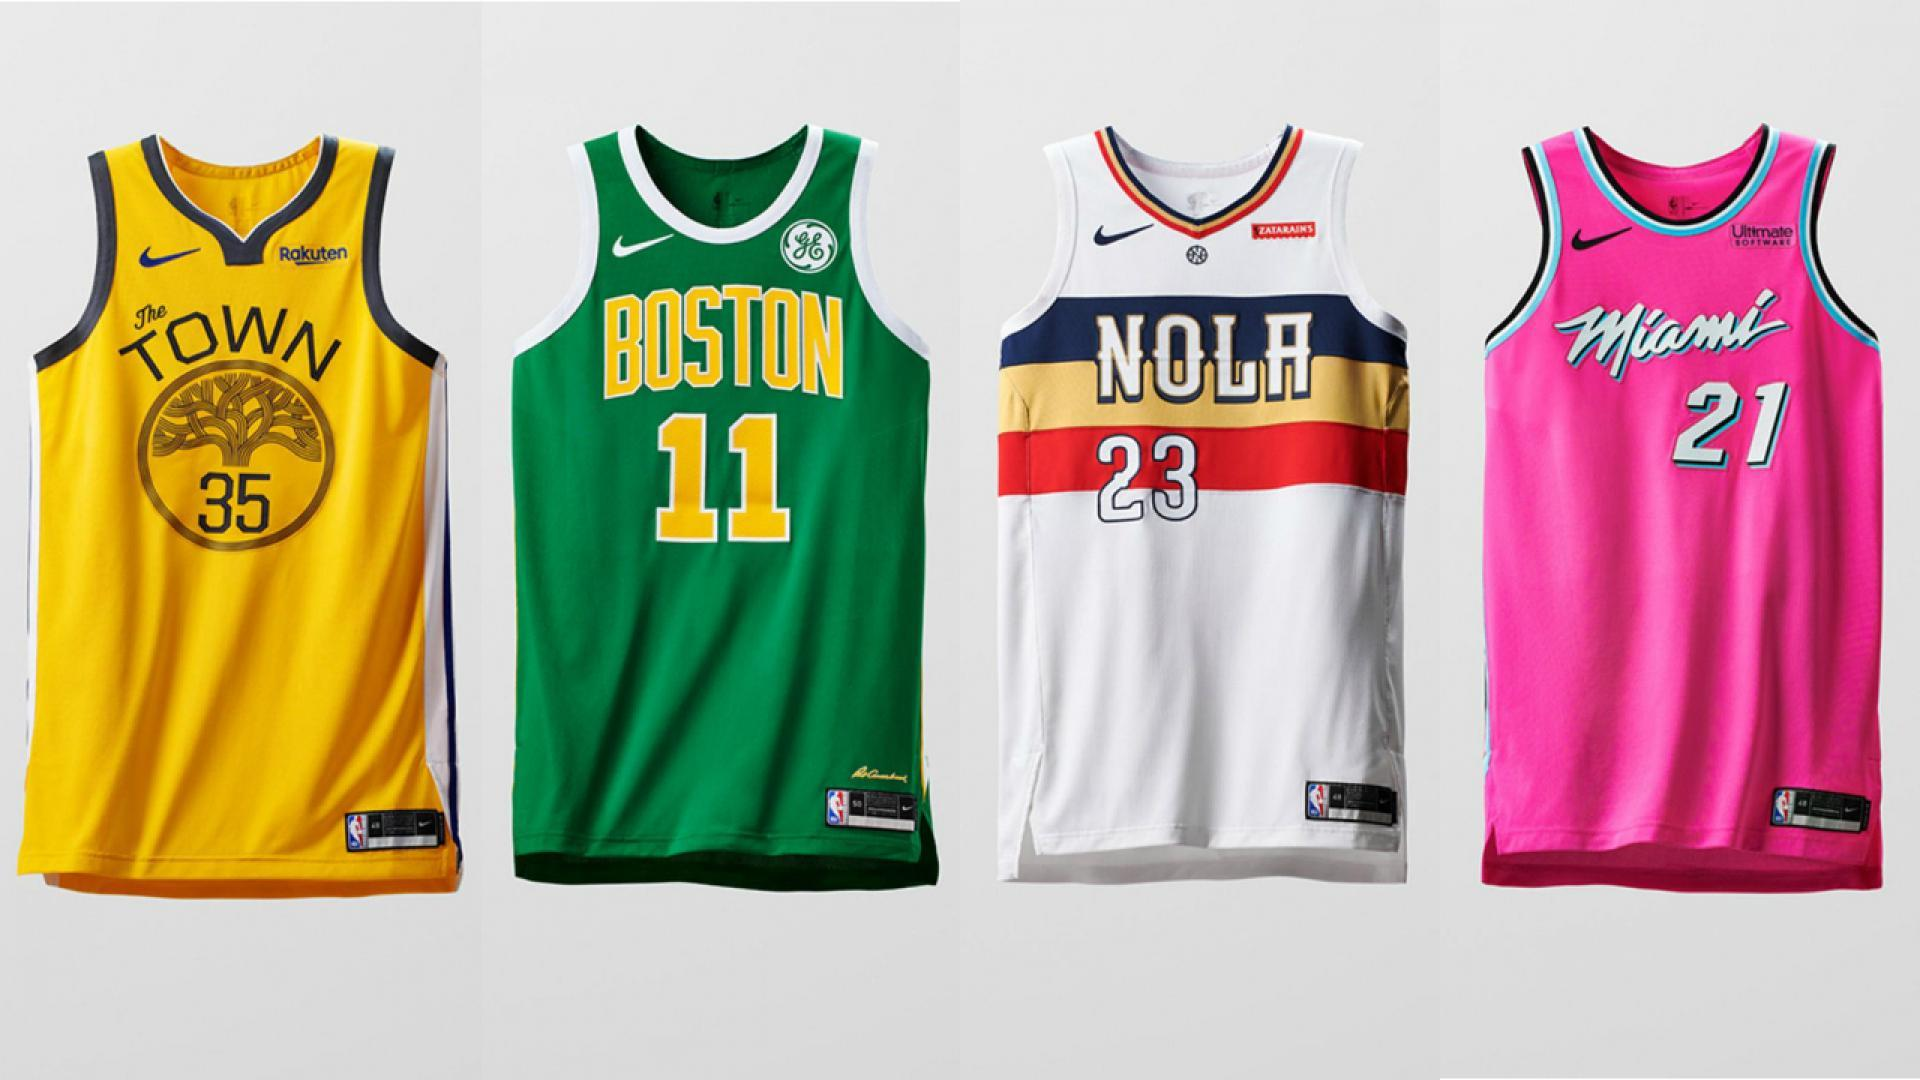 acbaa5744768 Teams unveil Earned Edition uniforms for 2018-19 season